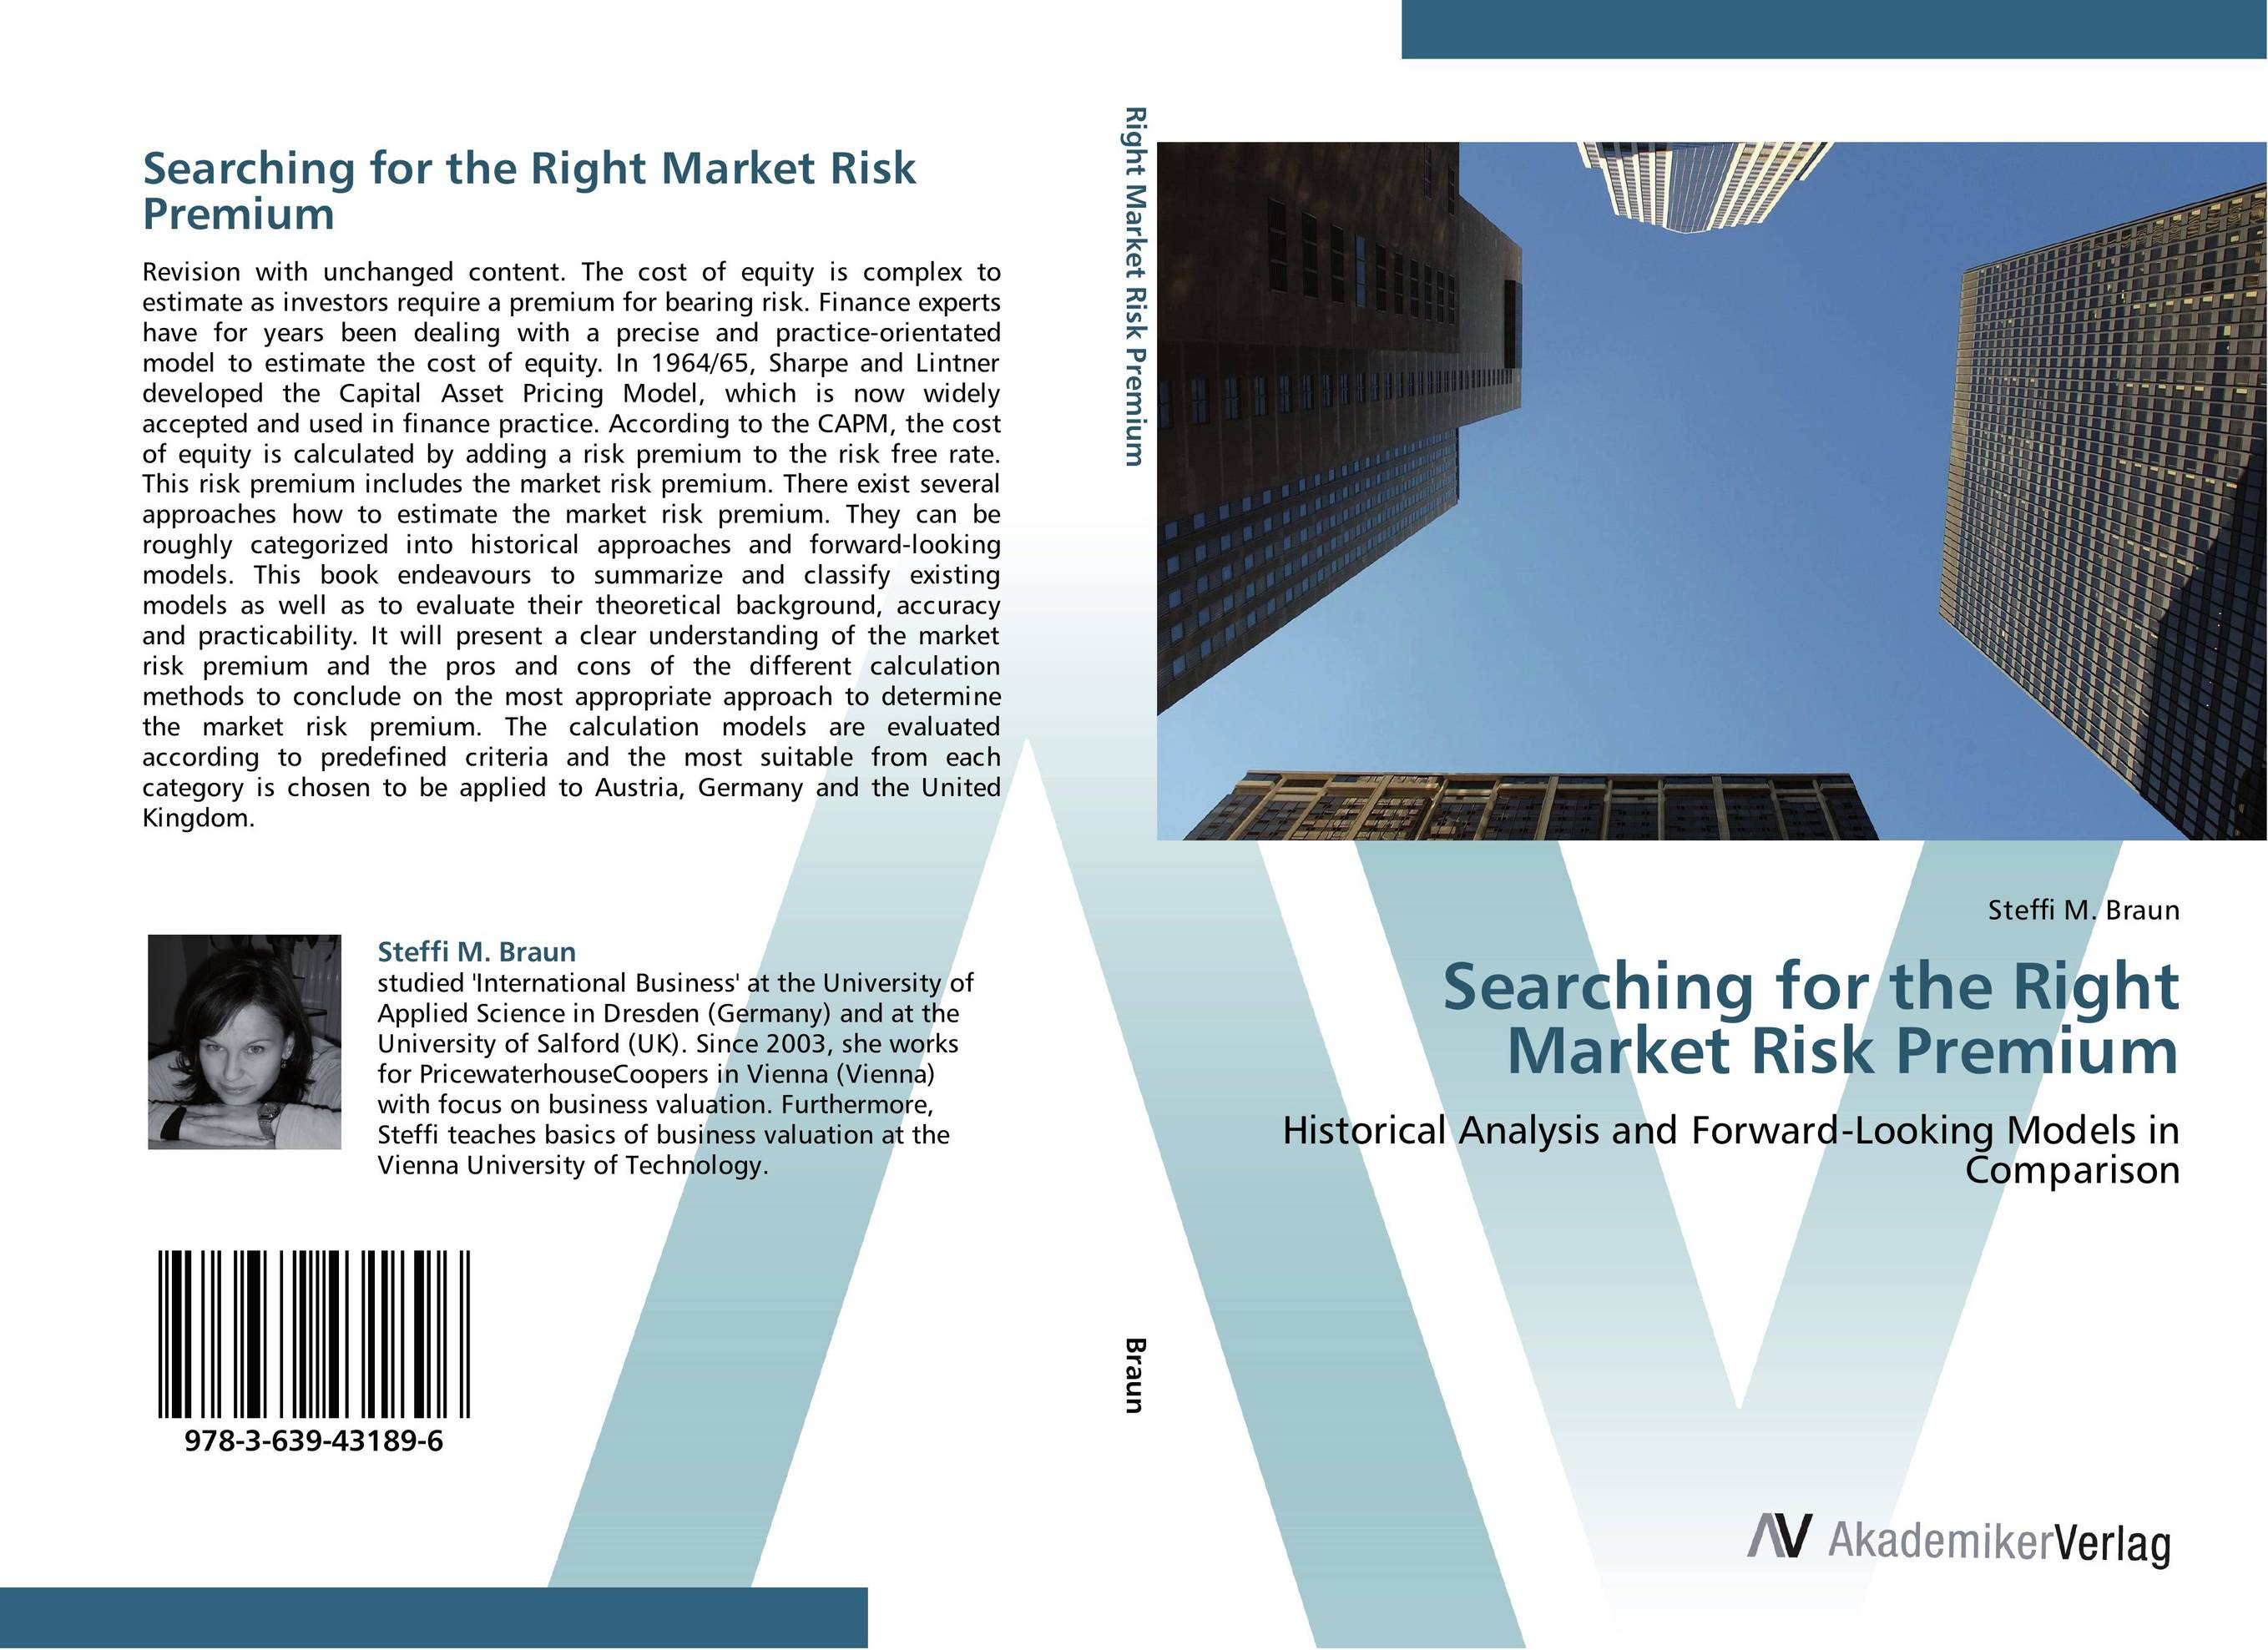 Searching for the Right Market Risk Premium christian szylar handbook of market risk